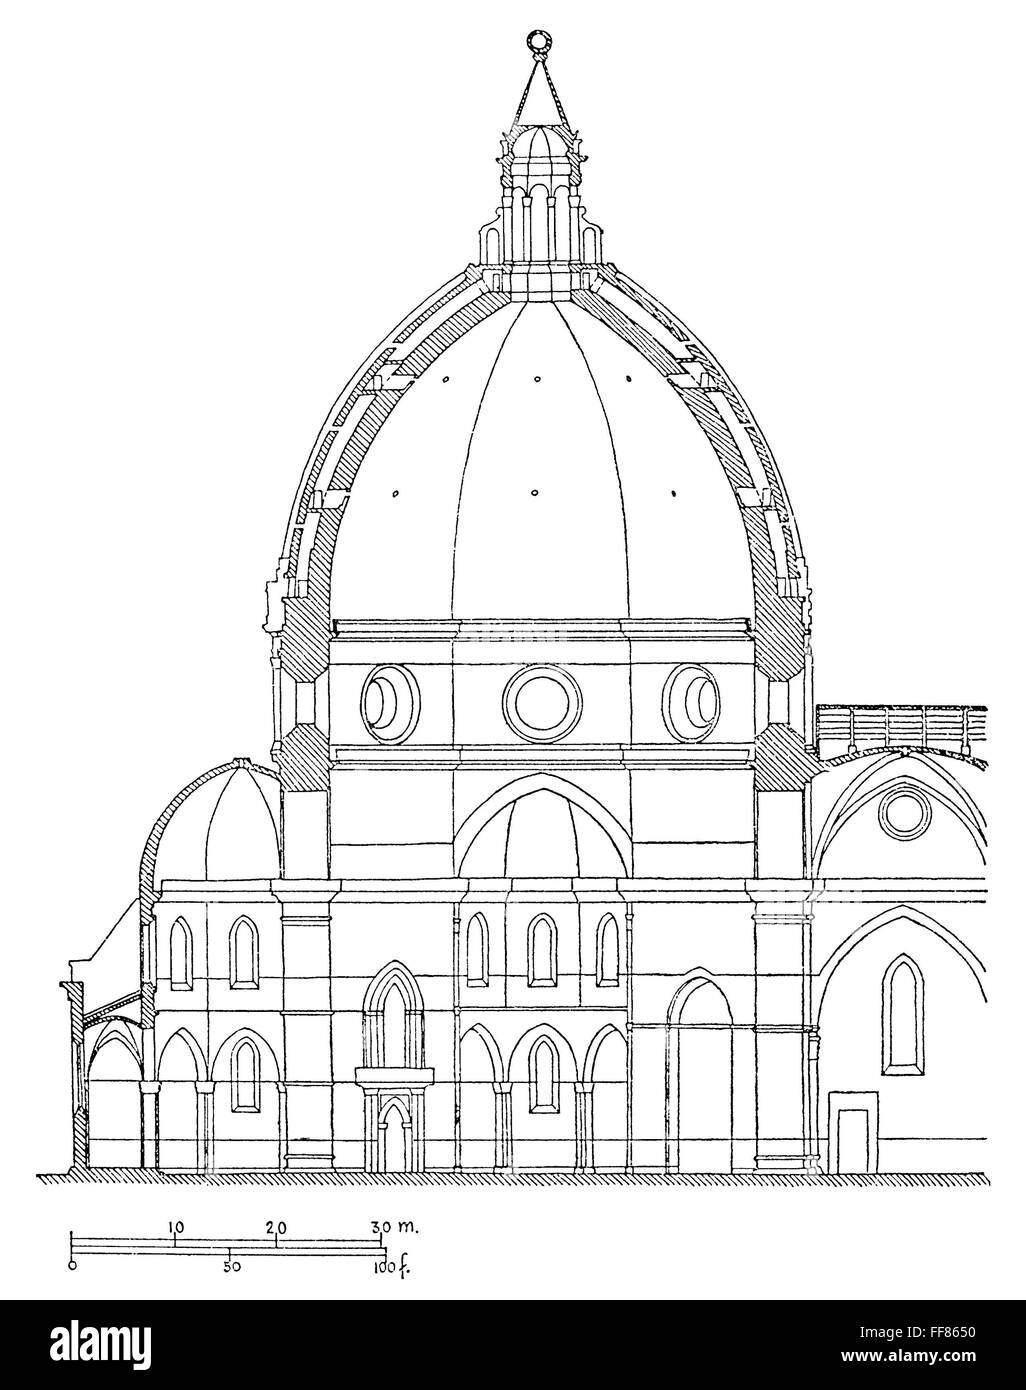 brunelleschi dome plan nmodern diagram of the cross section of rh alamy com 2v dome diagram dome diagram where would you find the youngest layer